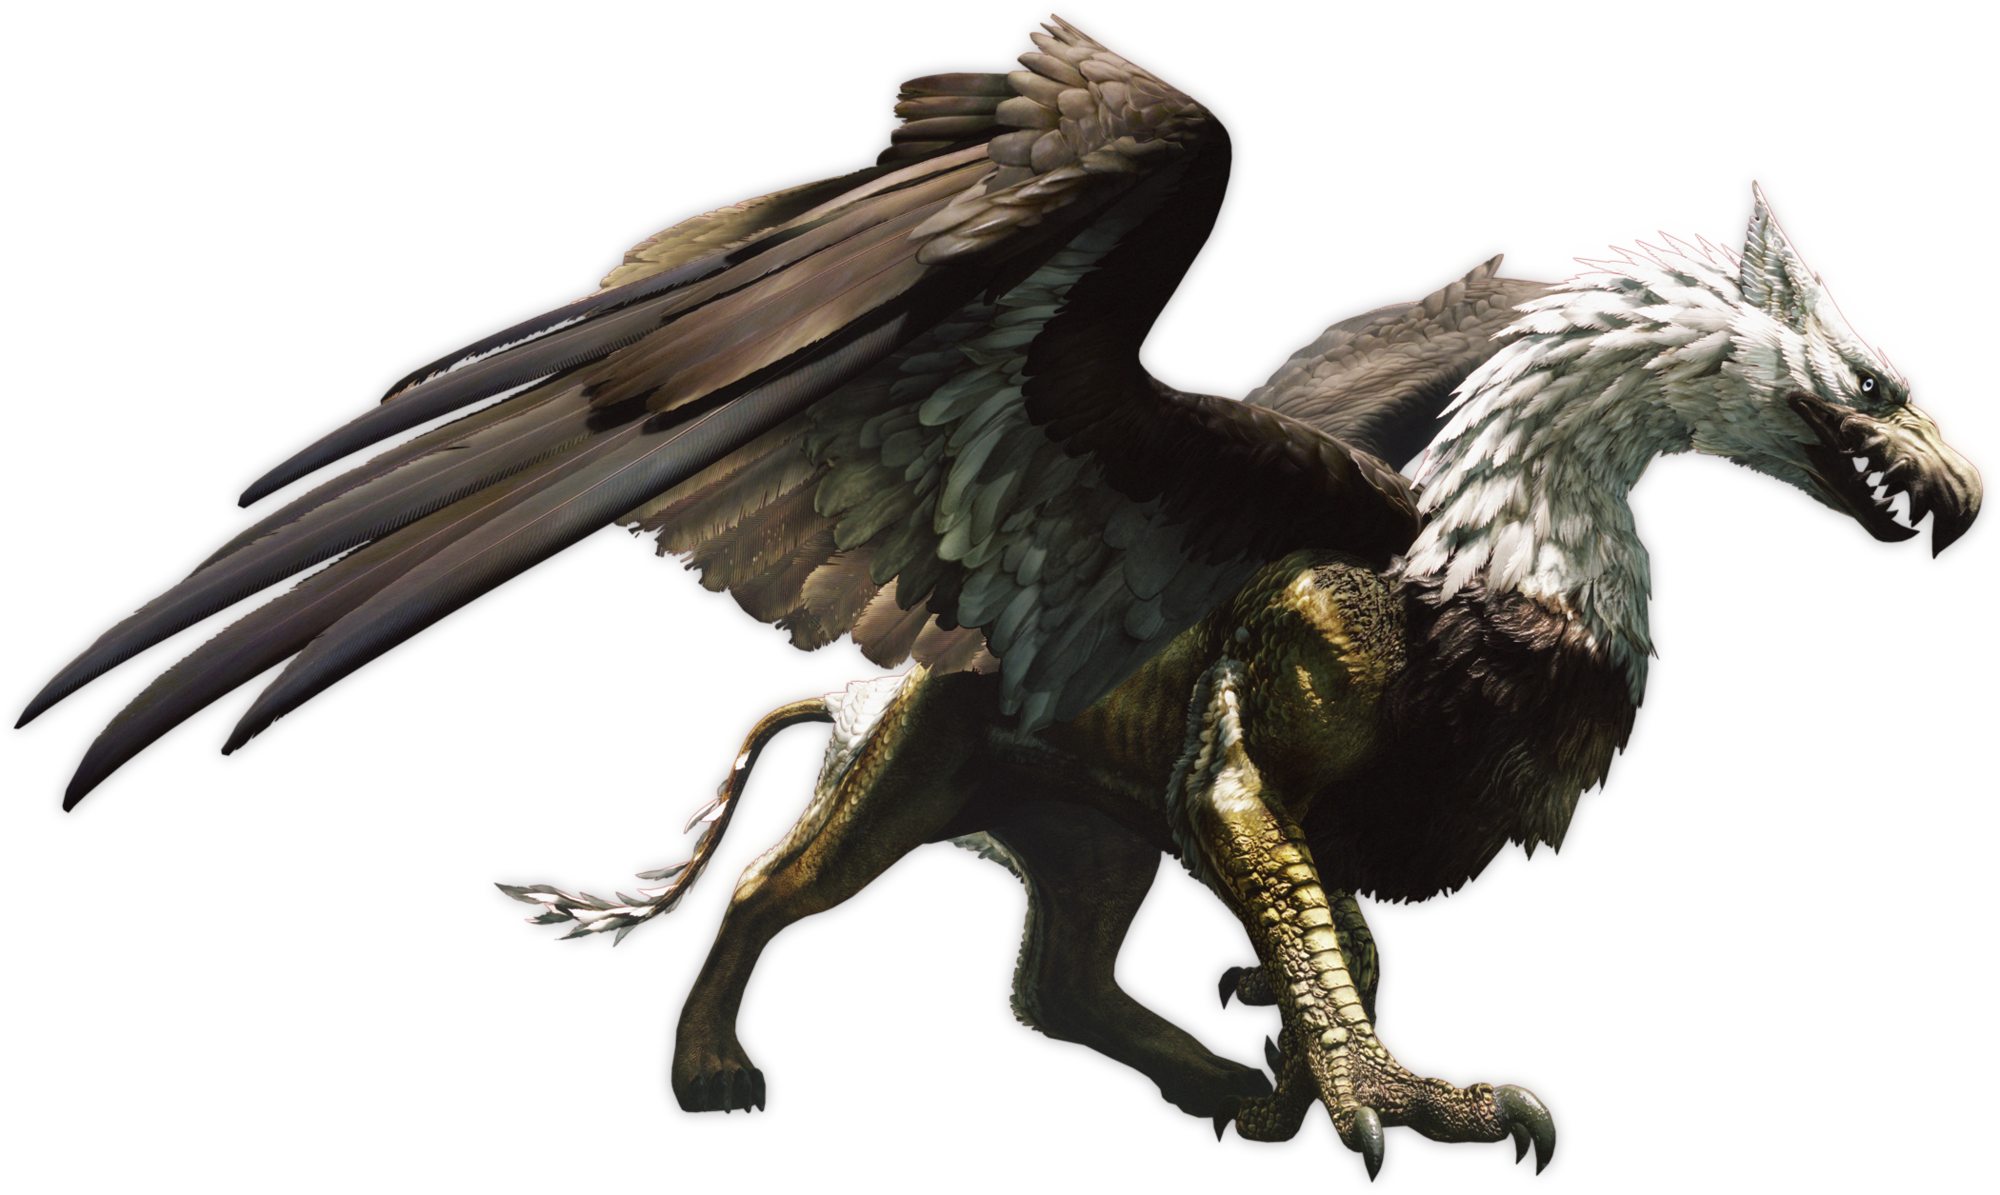 Griffin | Dragon's Dogma Wiki | FANDOM powered by Wikia